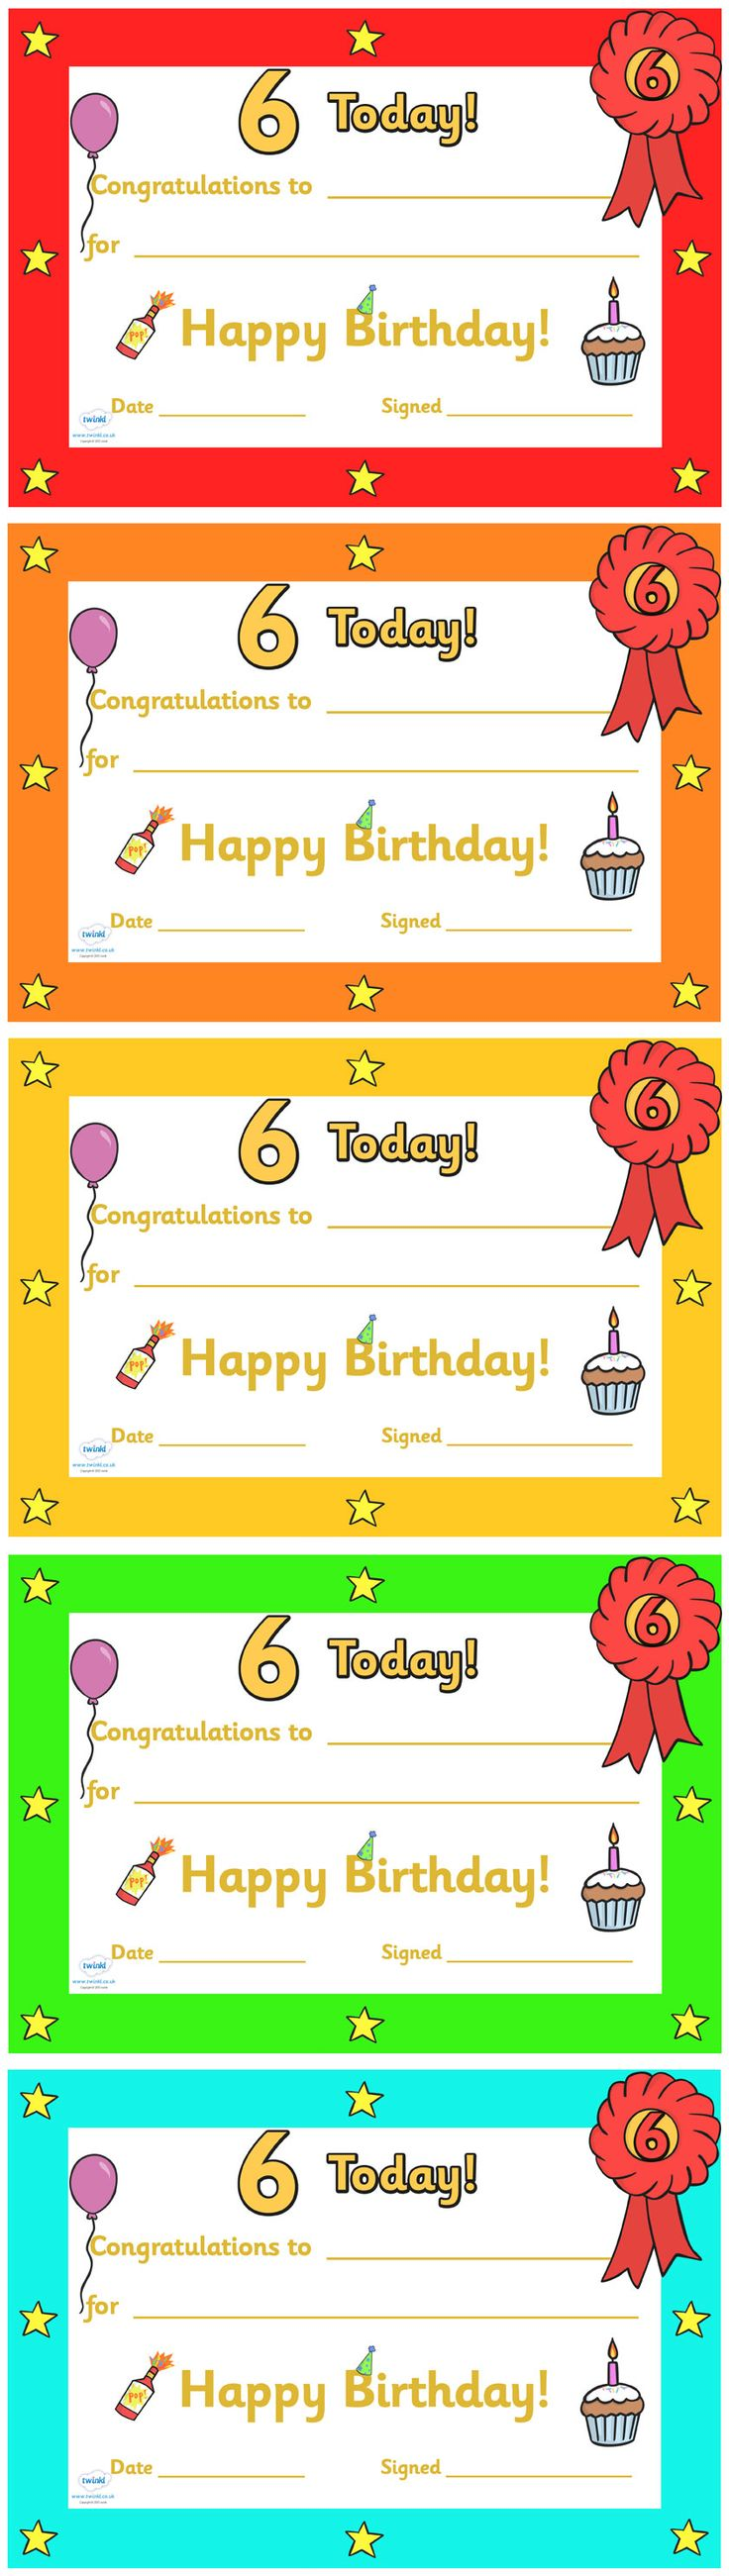 Best 25+ Birthday certificate ideas on Pinterest | Birthday ...